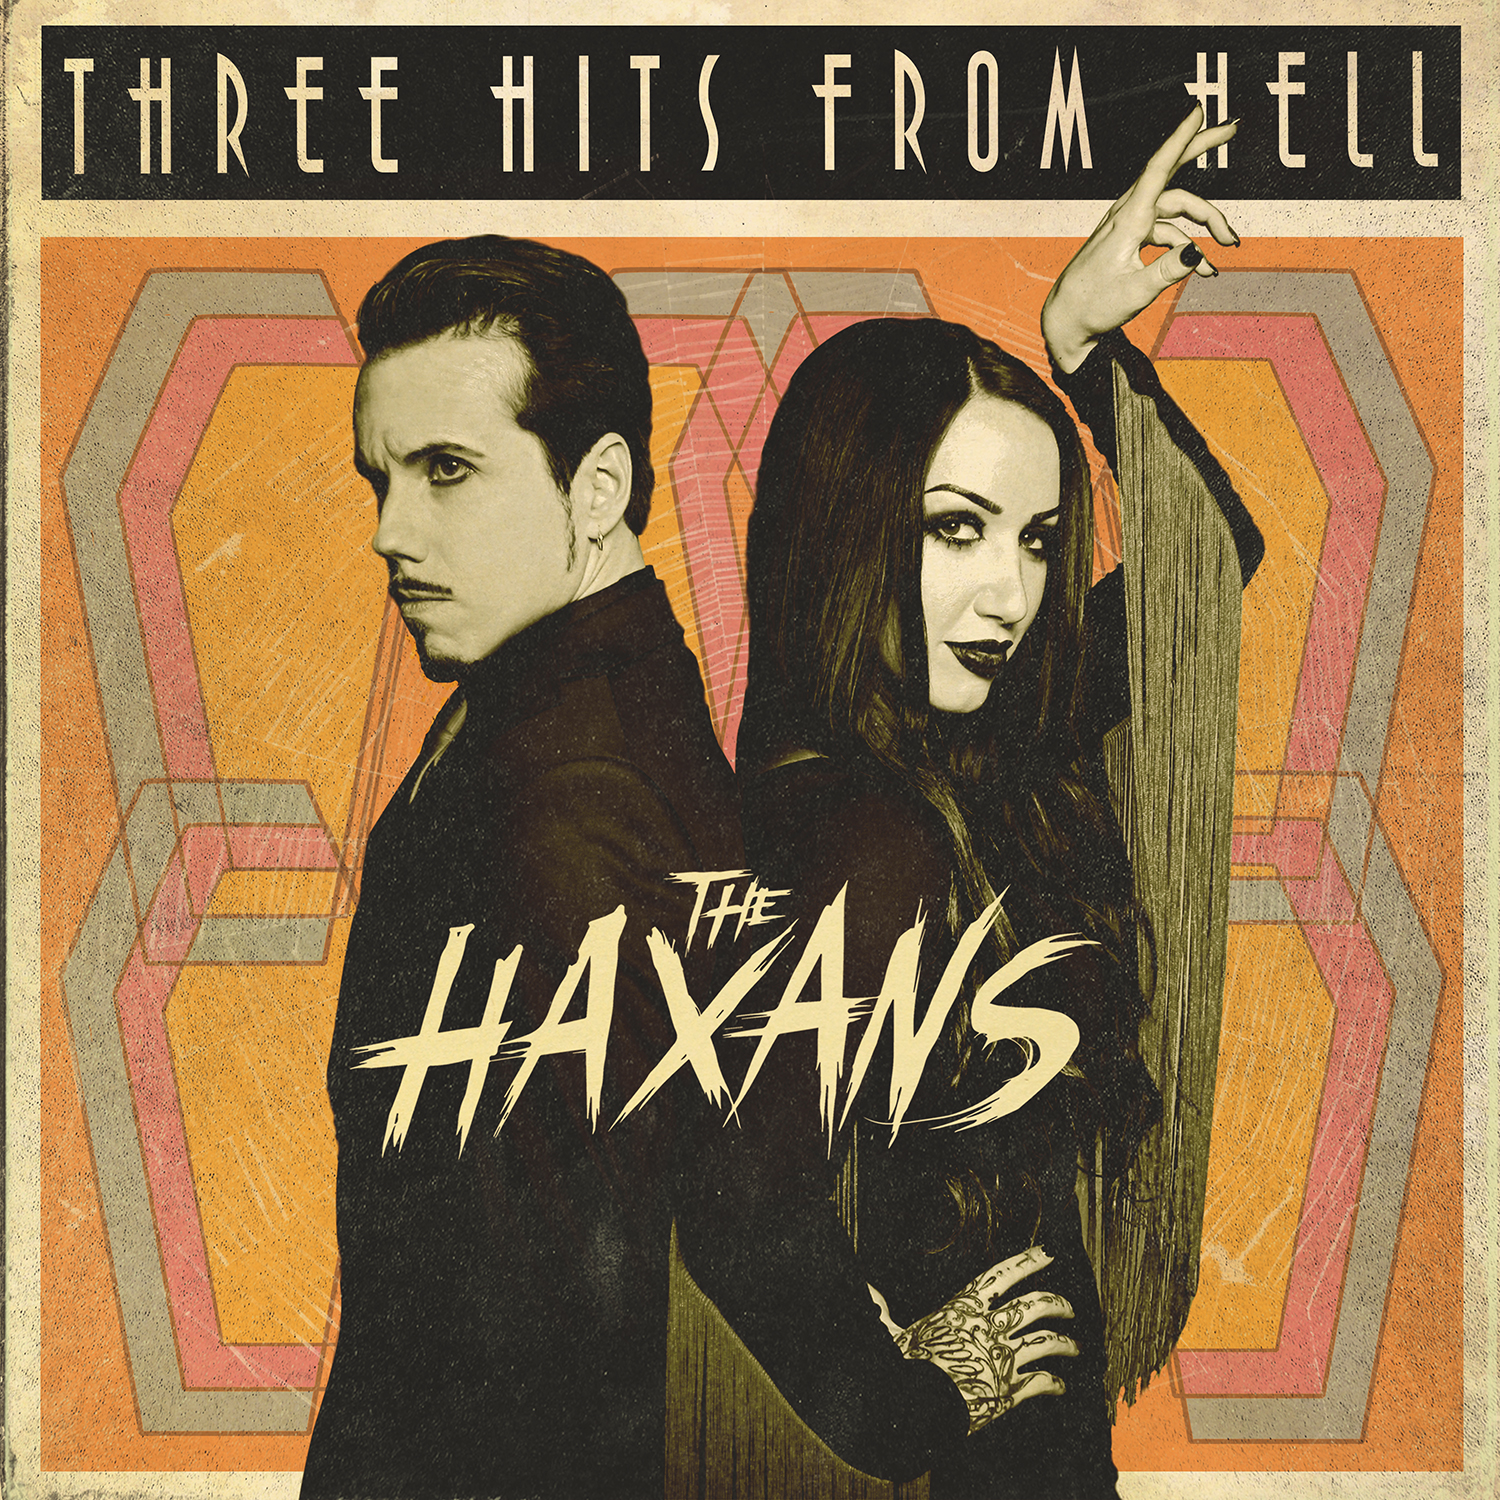 'Three Hits From Hell' EP